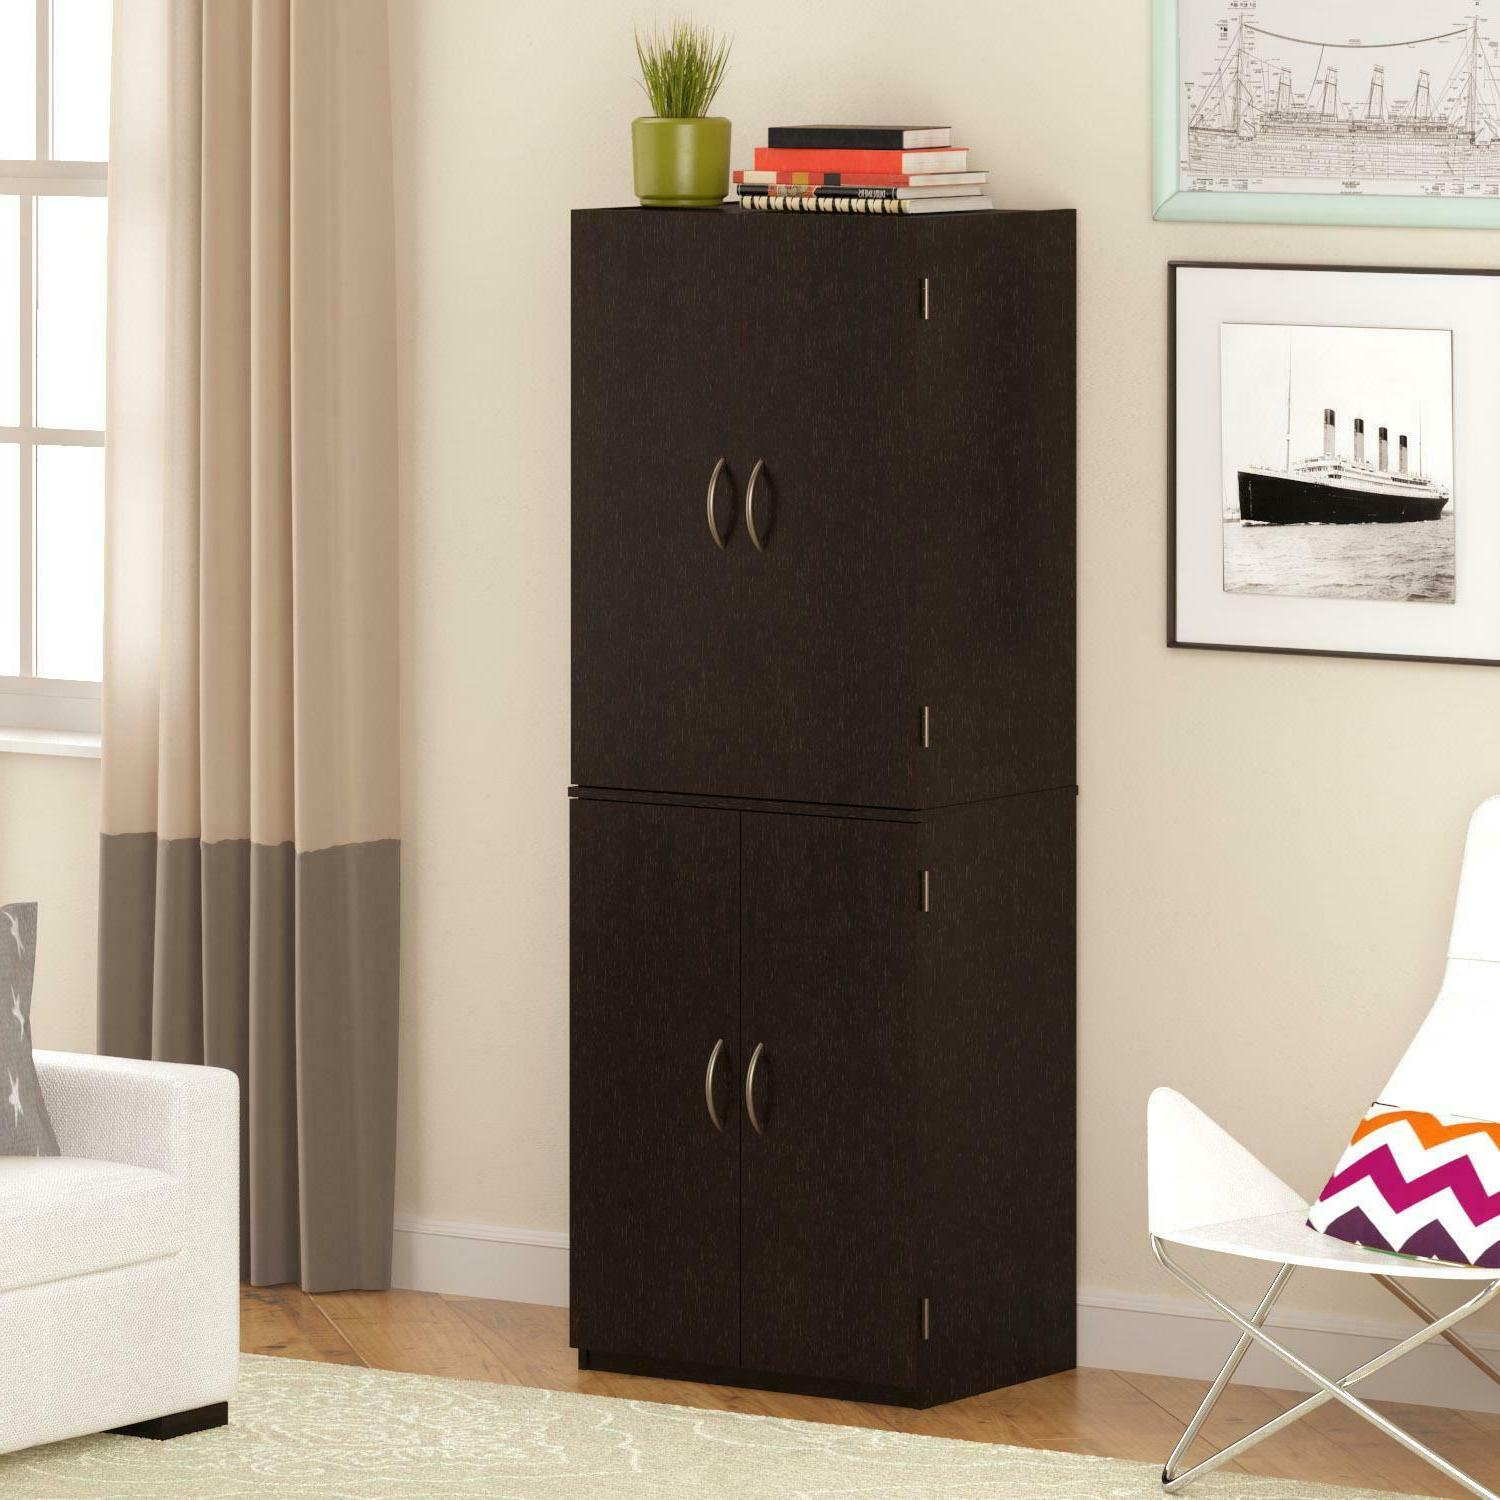 Mainstays Storage Cabinet, Finishes 4 or